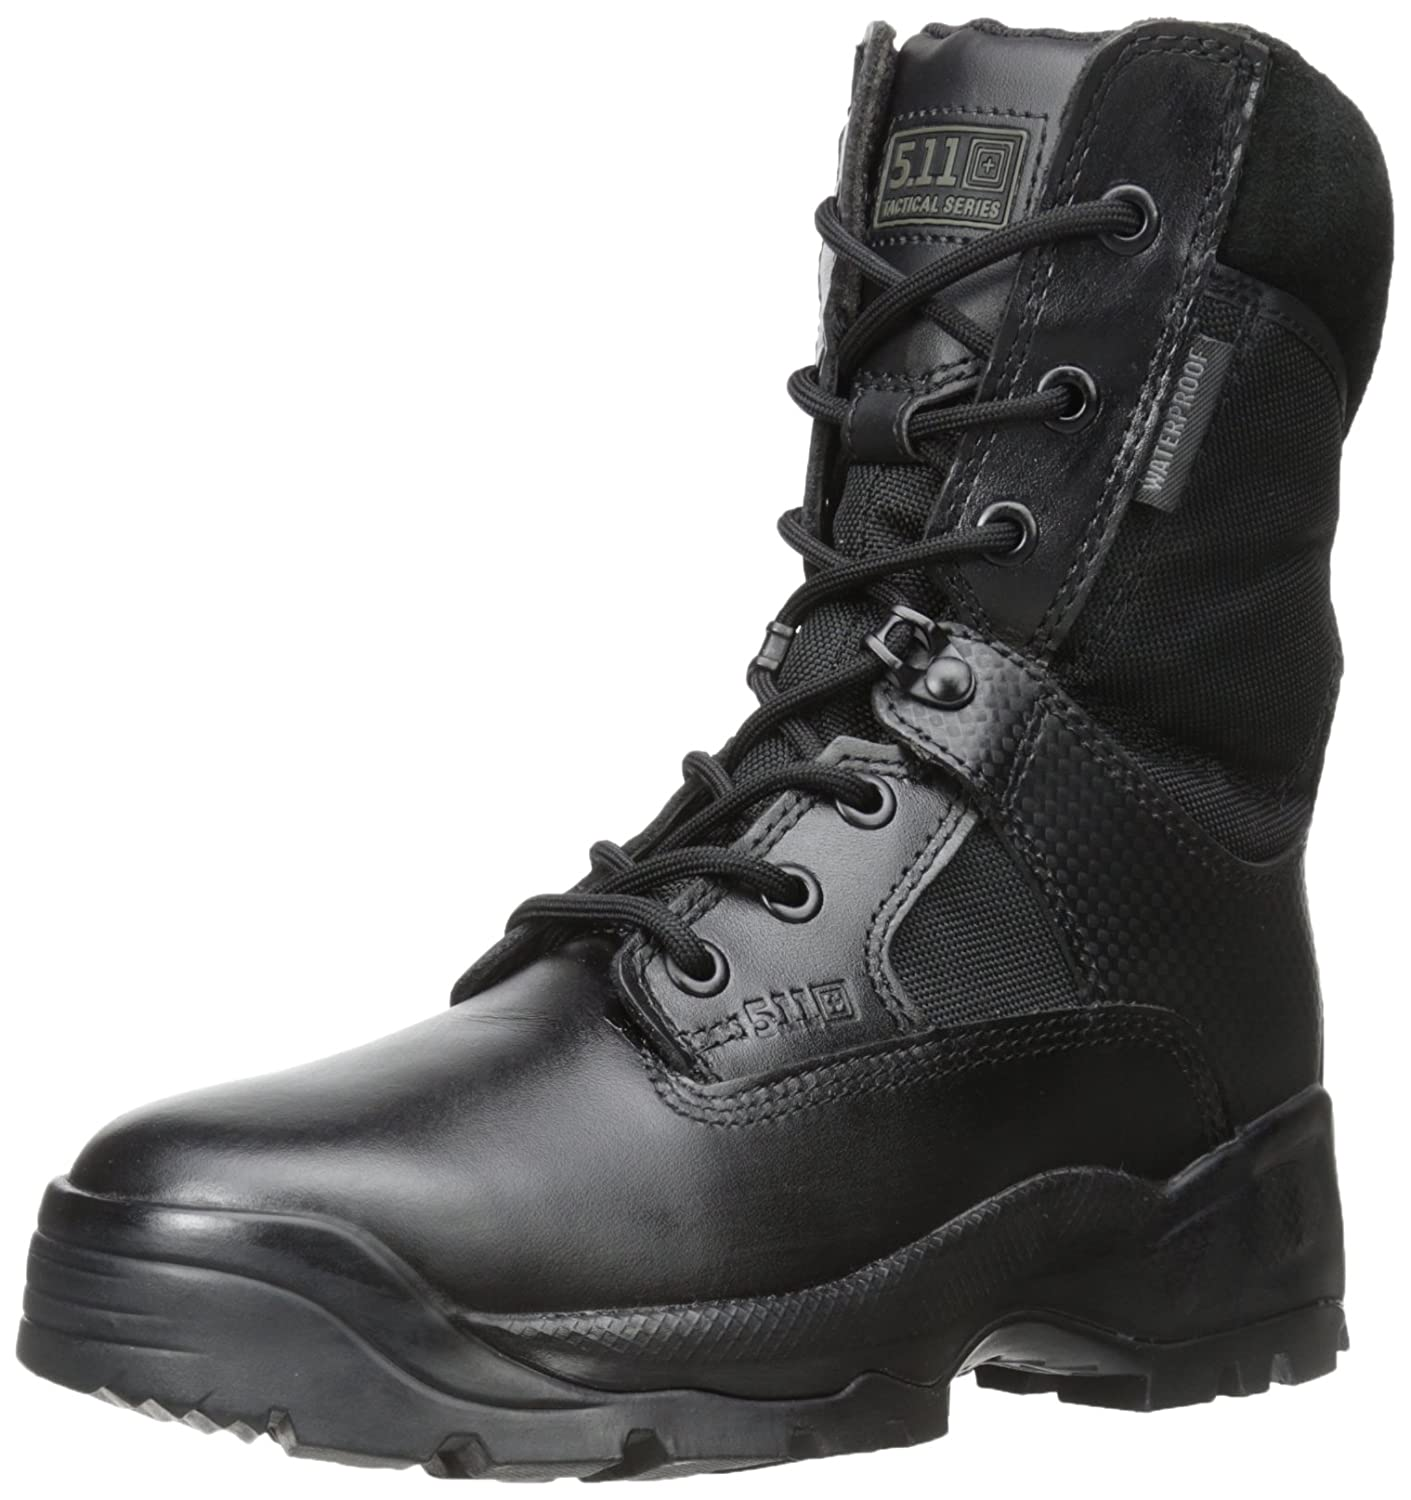 5.11 Women's A.T.A.C. 8'' Storm Tactical Boots, Style 12217 B006BU7UGA 7 D(M) US|Black